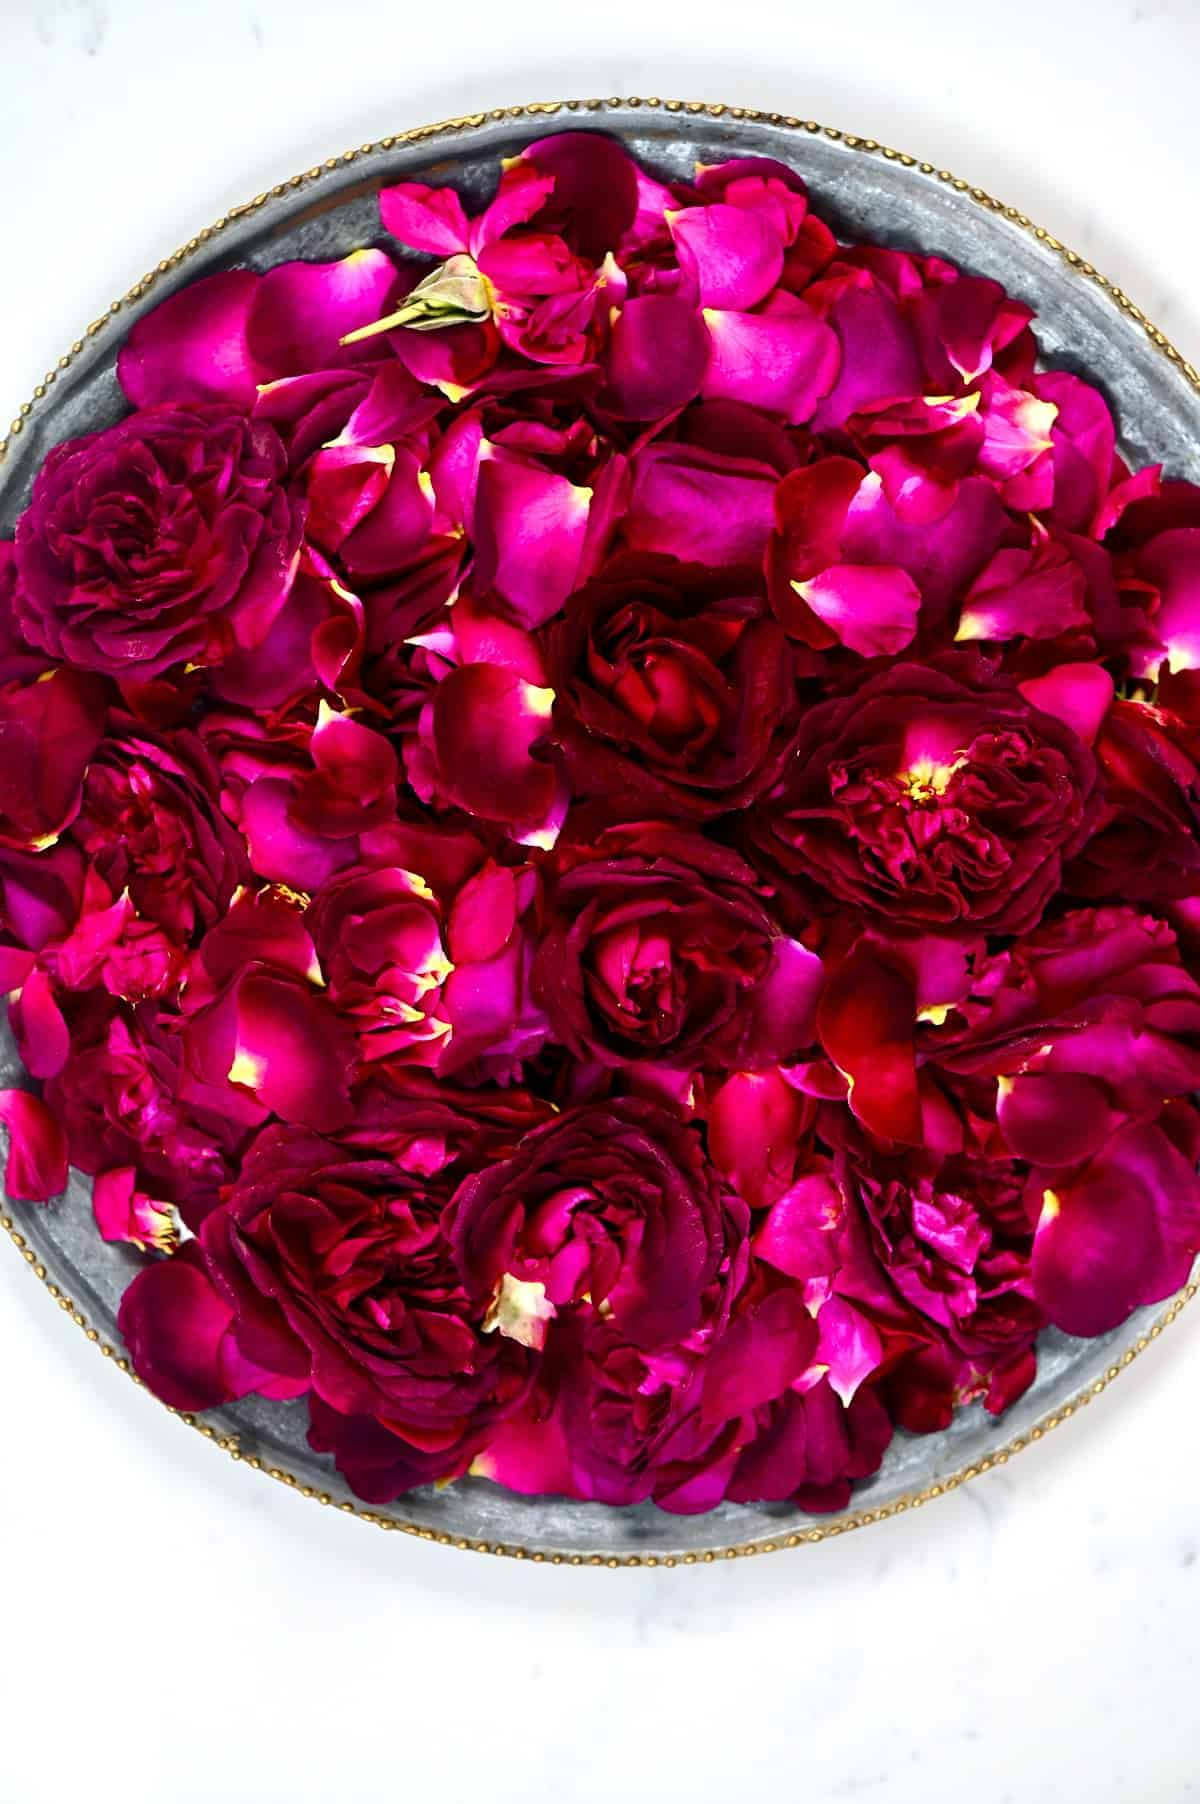 Spread of fresh roses on a tray